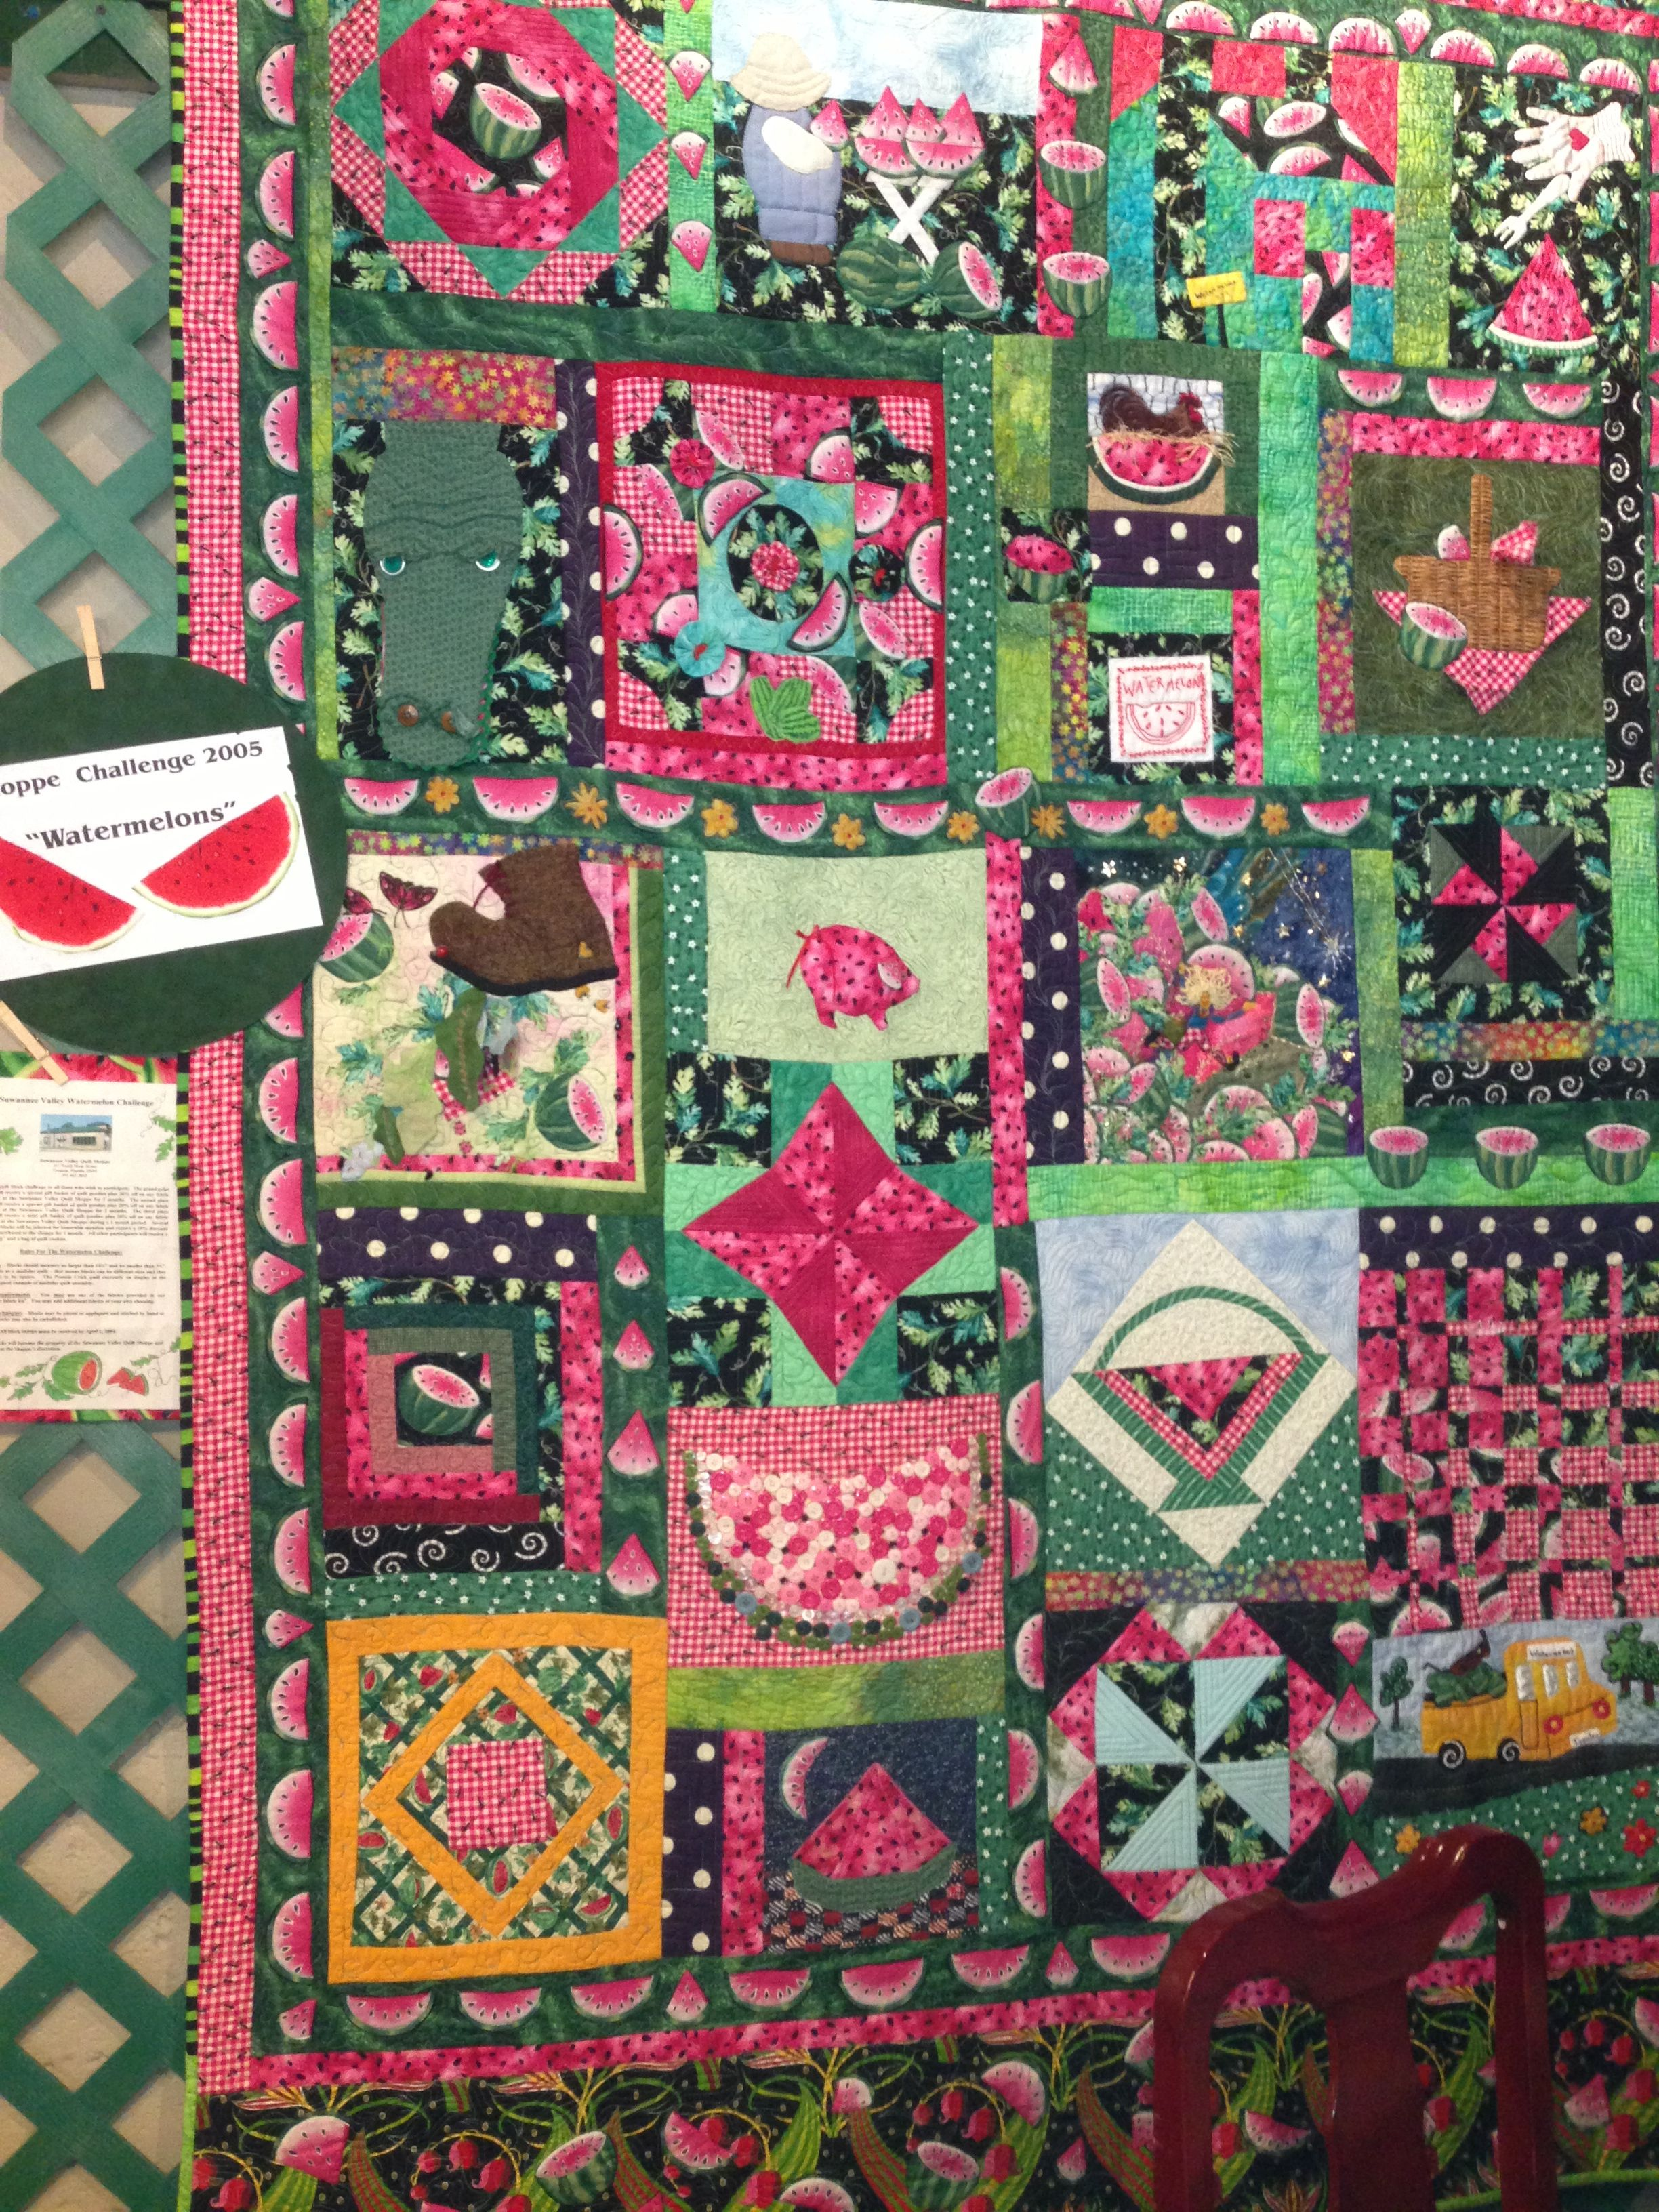 Challenge quilt 2005 at shop. Watermelons Suwannee valley quilt ... : suwannee quilt shop - Adamdwight.com